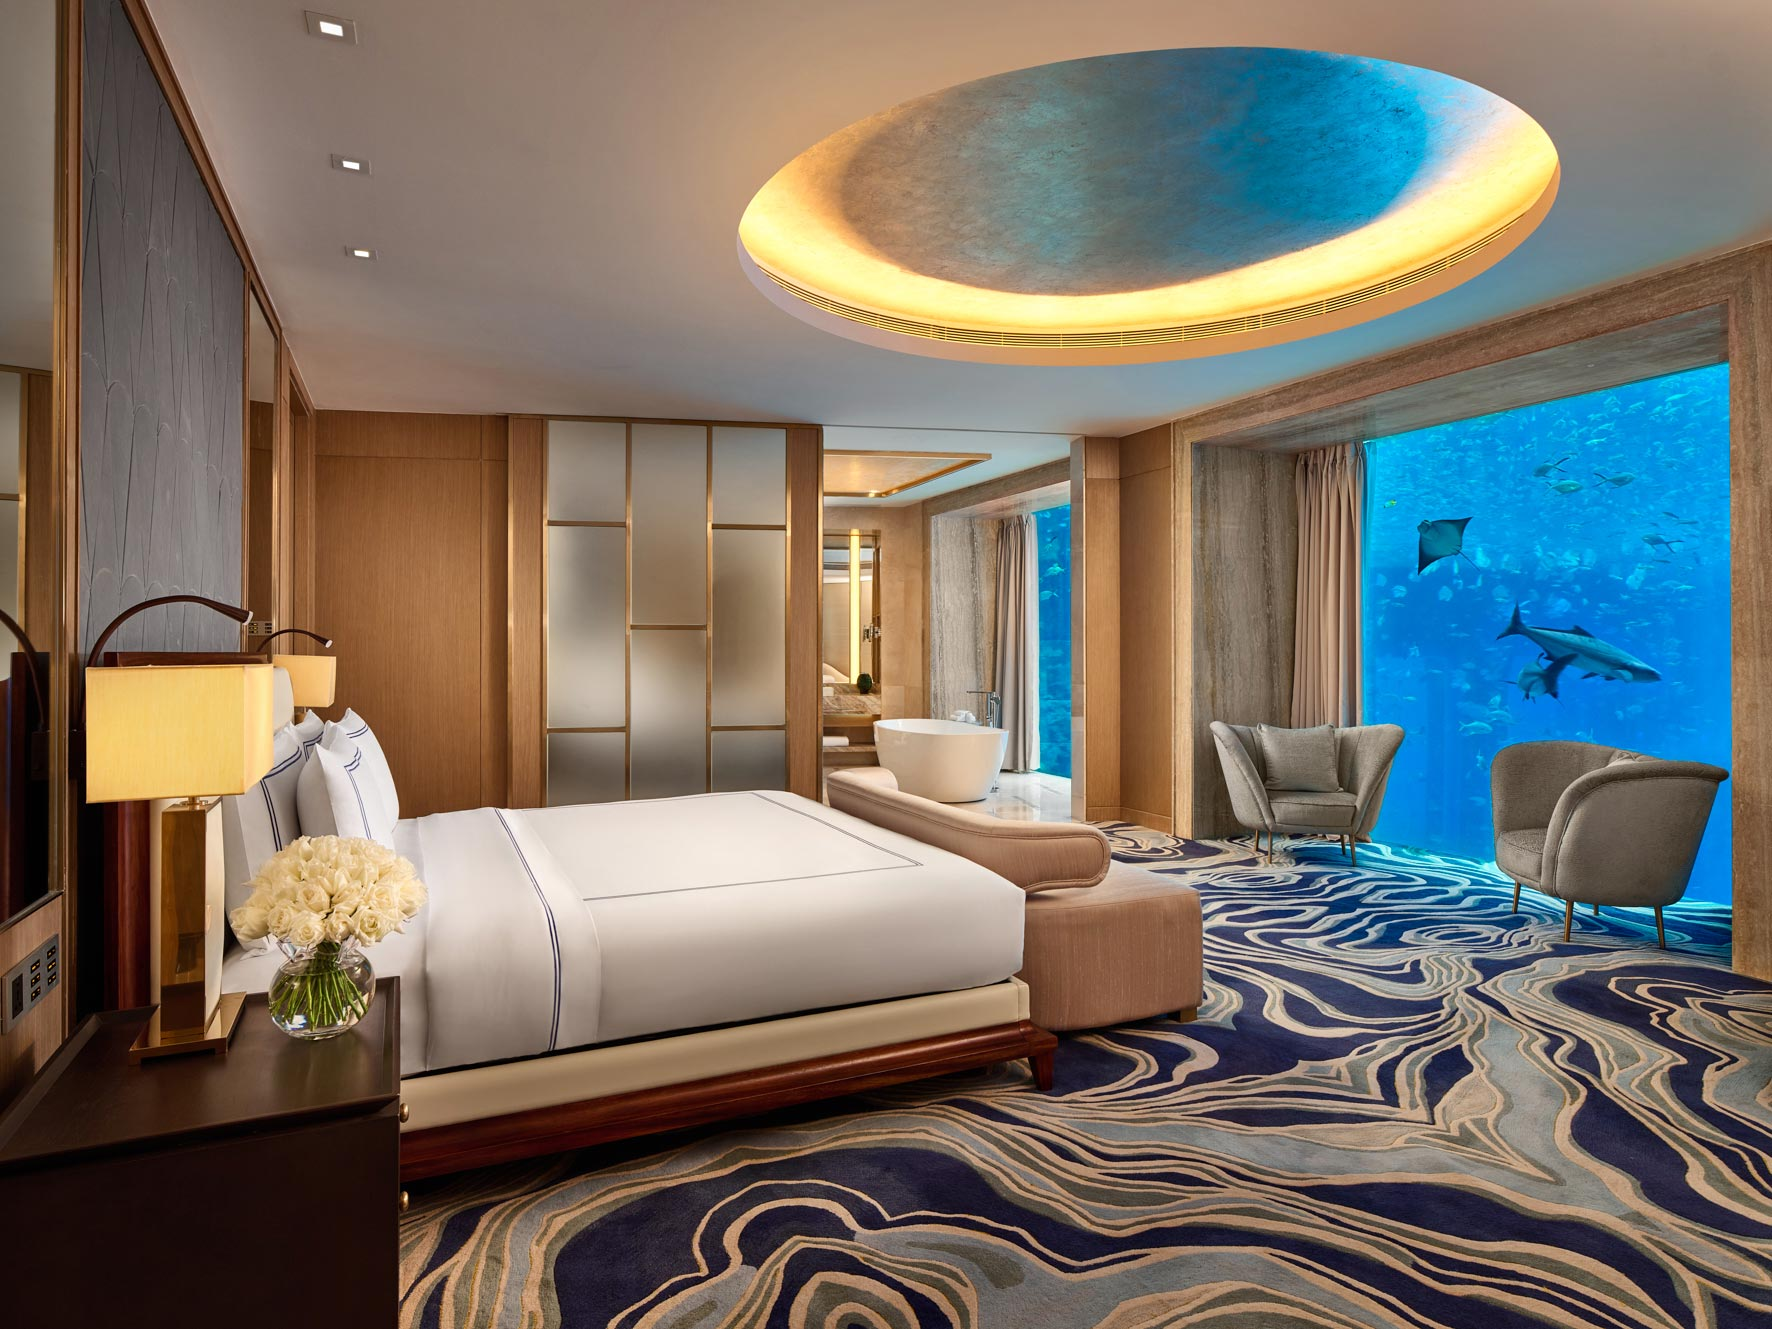 Atlantis Sanya Hotel, China. Architecture, hotel, interior photographer Singapore, China, Thailand, Malaysia. © Owen Raggett.